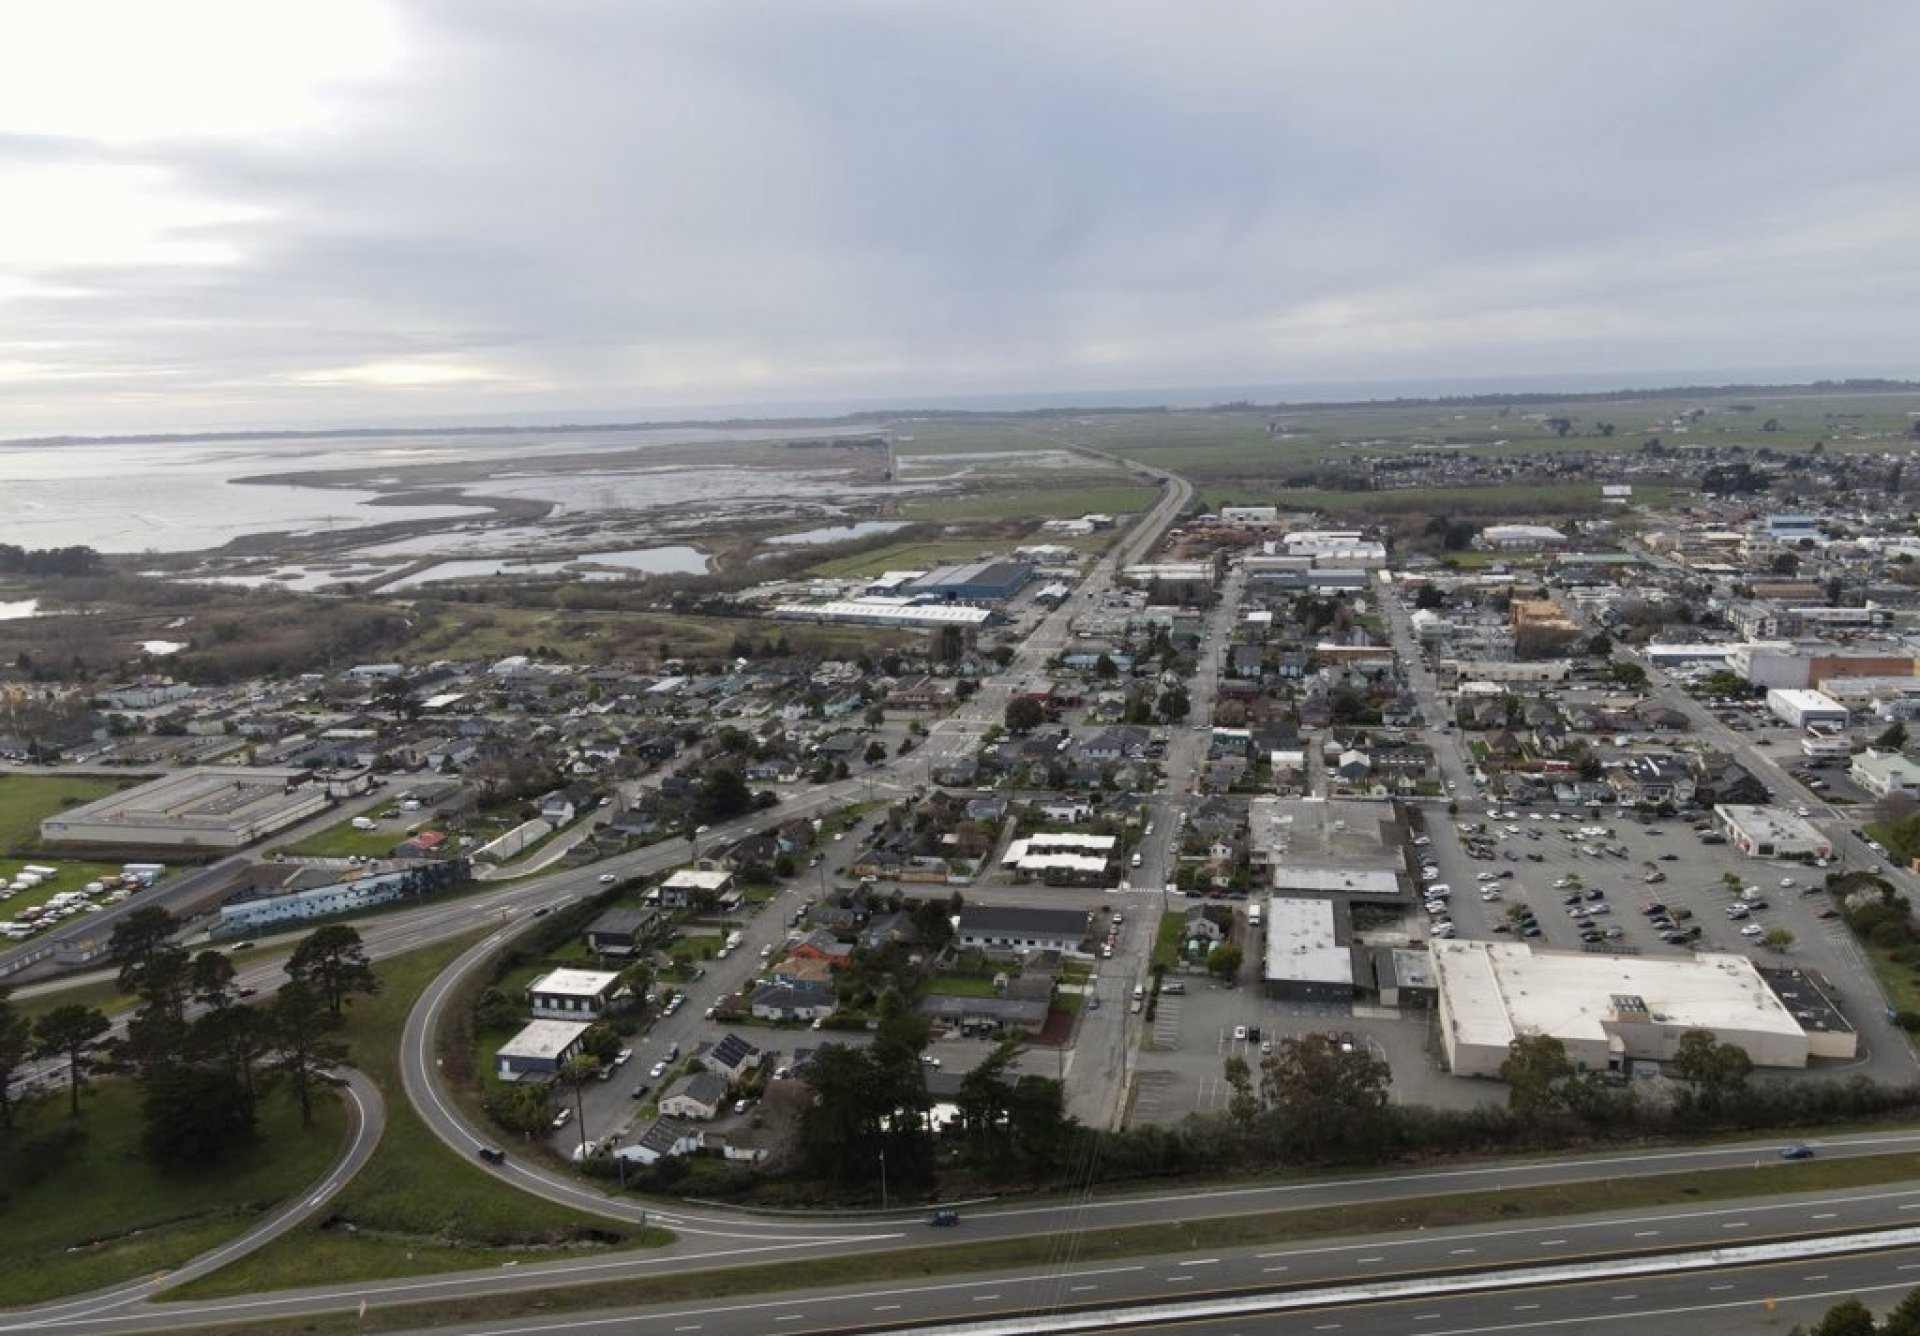 Viewing Arcata from above on Feb. 9. | Photo by Poppy Cartledge